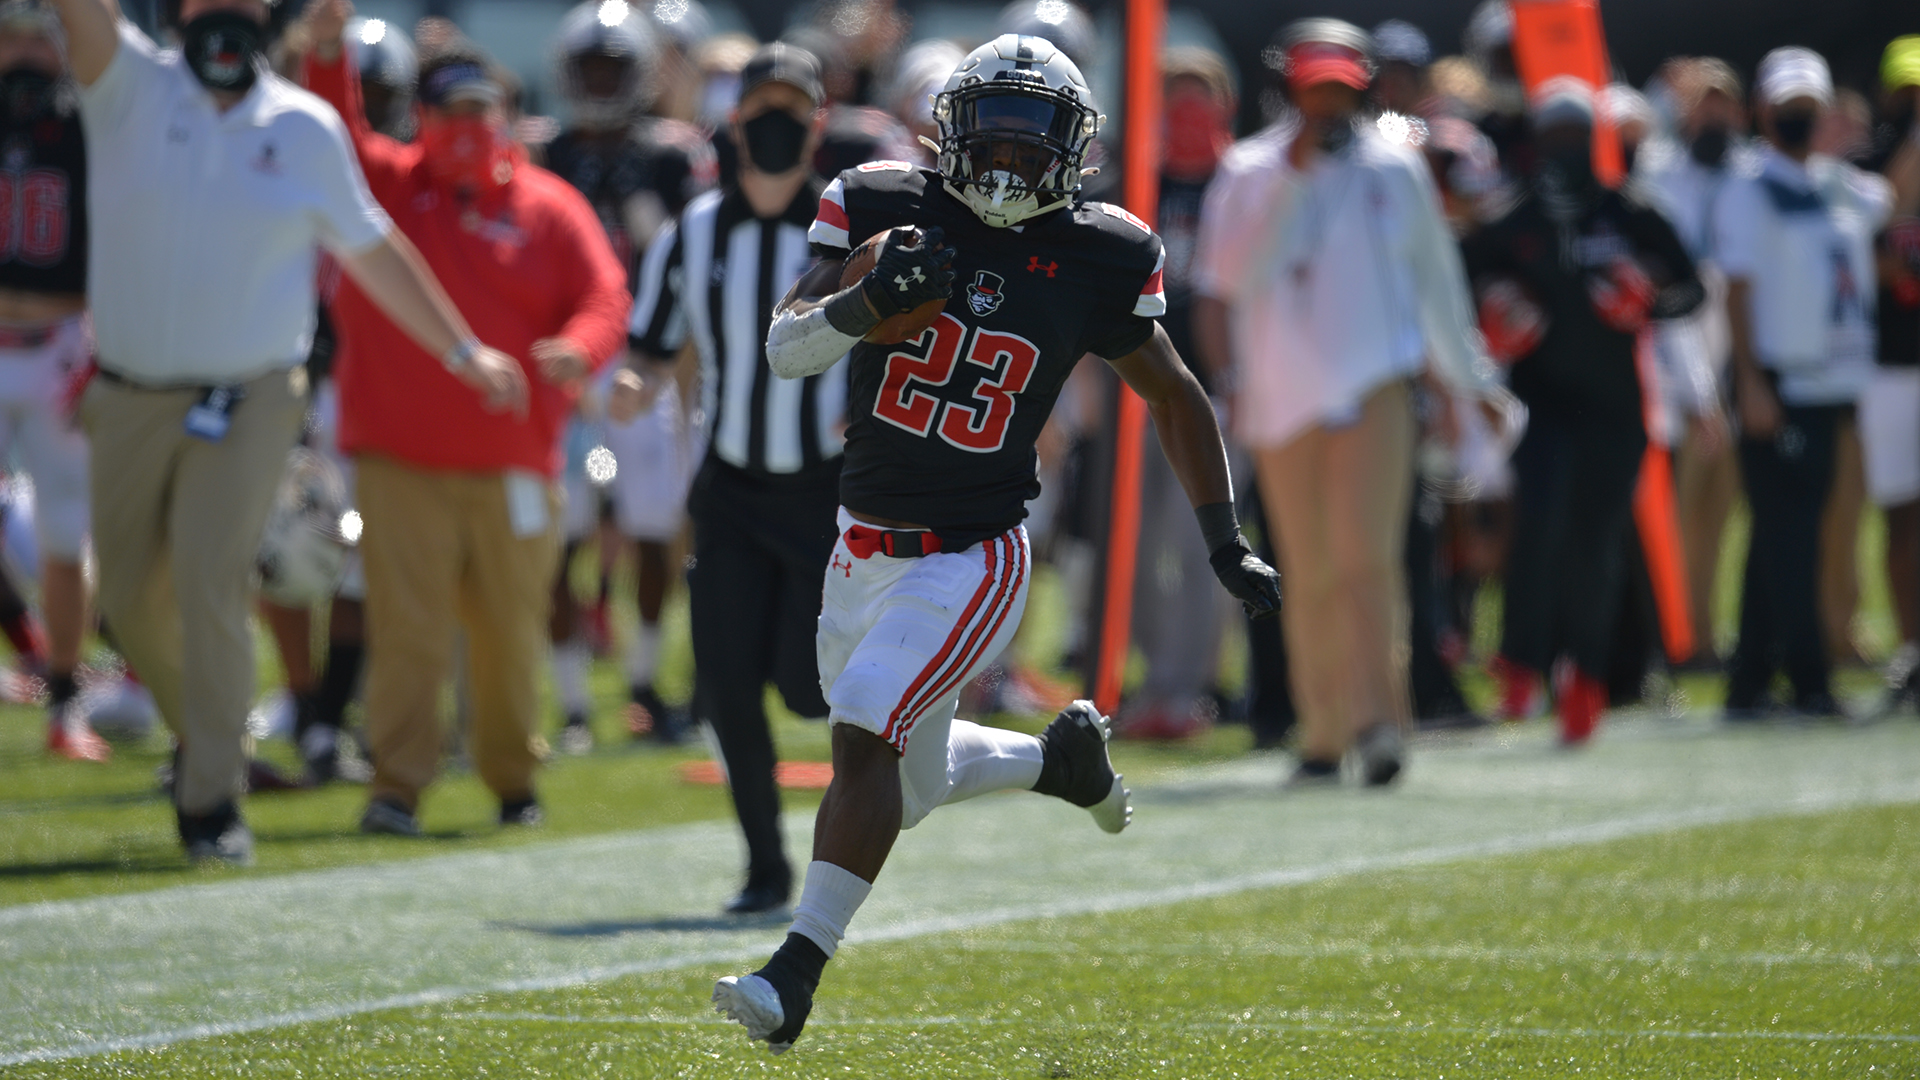 C.J. Evans runs down the sideline for a 64-yard score against the University of Cincinnati | APSU SPORTS INFORMATION